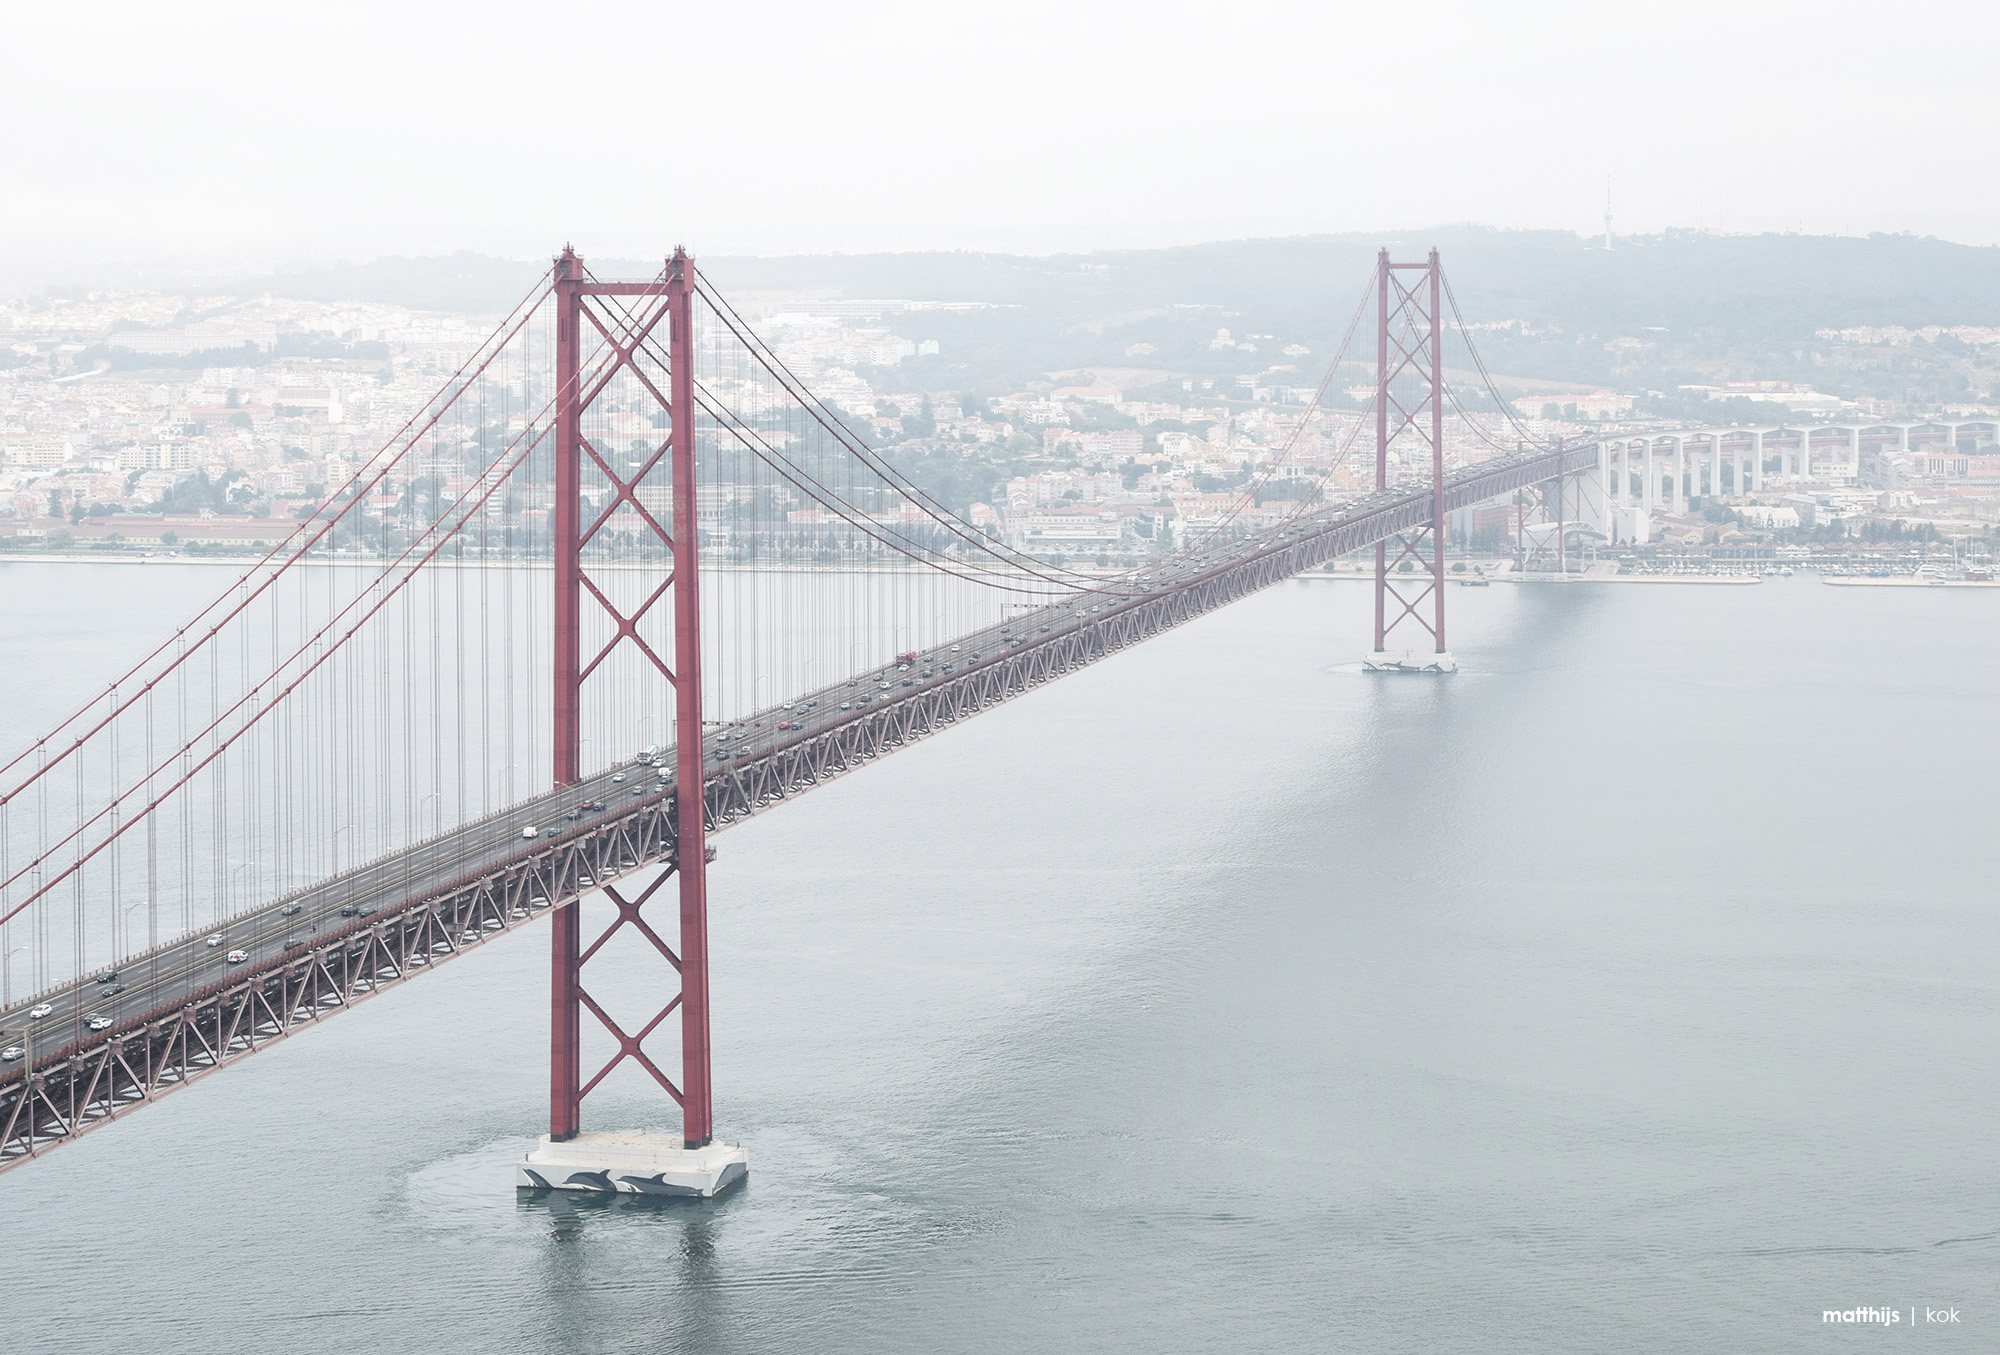 Ponte 25 de Abril over the Tagus River, Lisbon, Portugal | Photo by Matthijs Kok